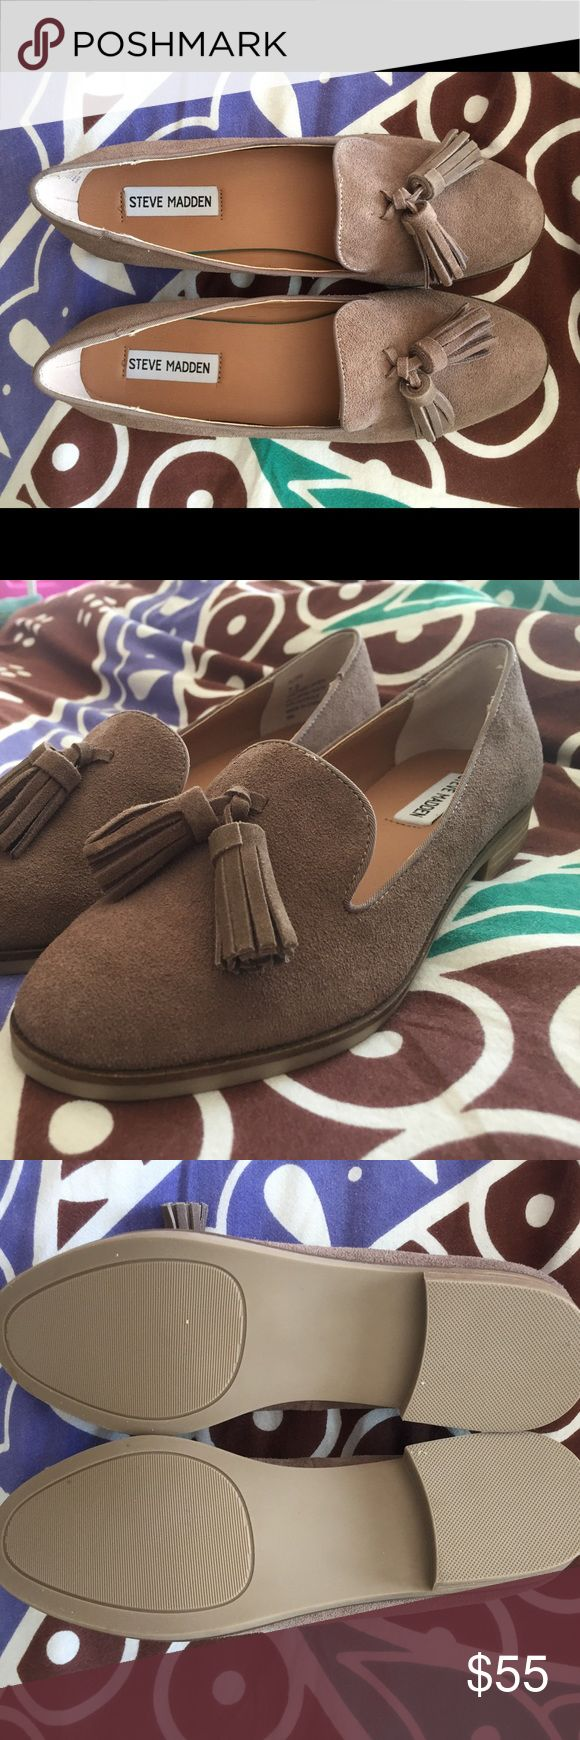 Steve Madden Alore Taupe Suede loafers - 7 1/2 Beautiful Steve Madden taupe suede loafers with tassels. Unworn and will come with box. Steve Madden Shoes Flats & Loafers